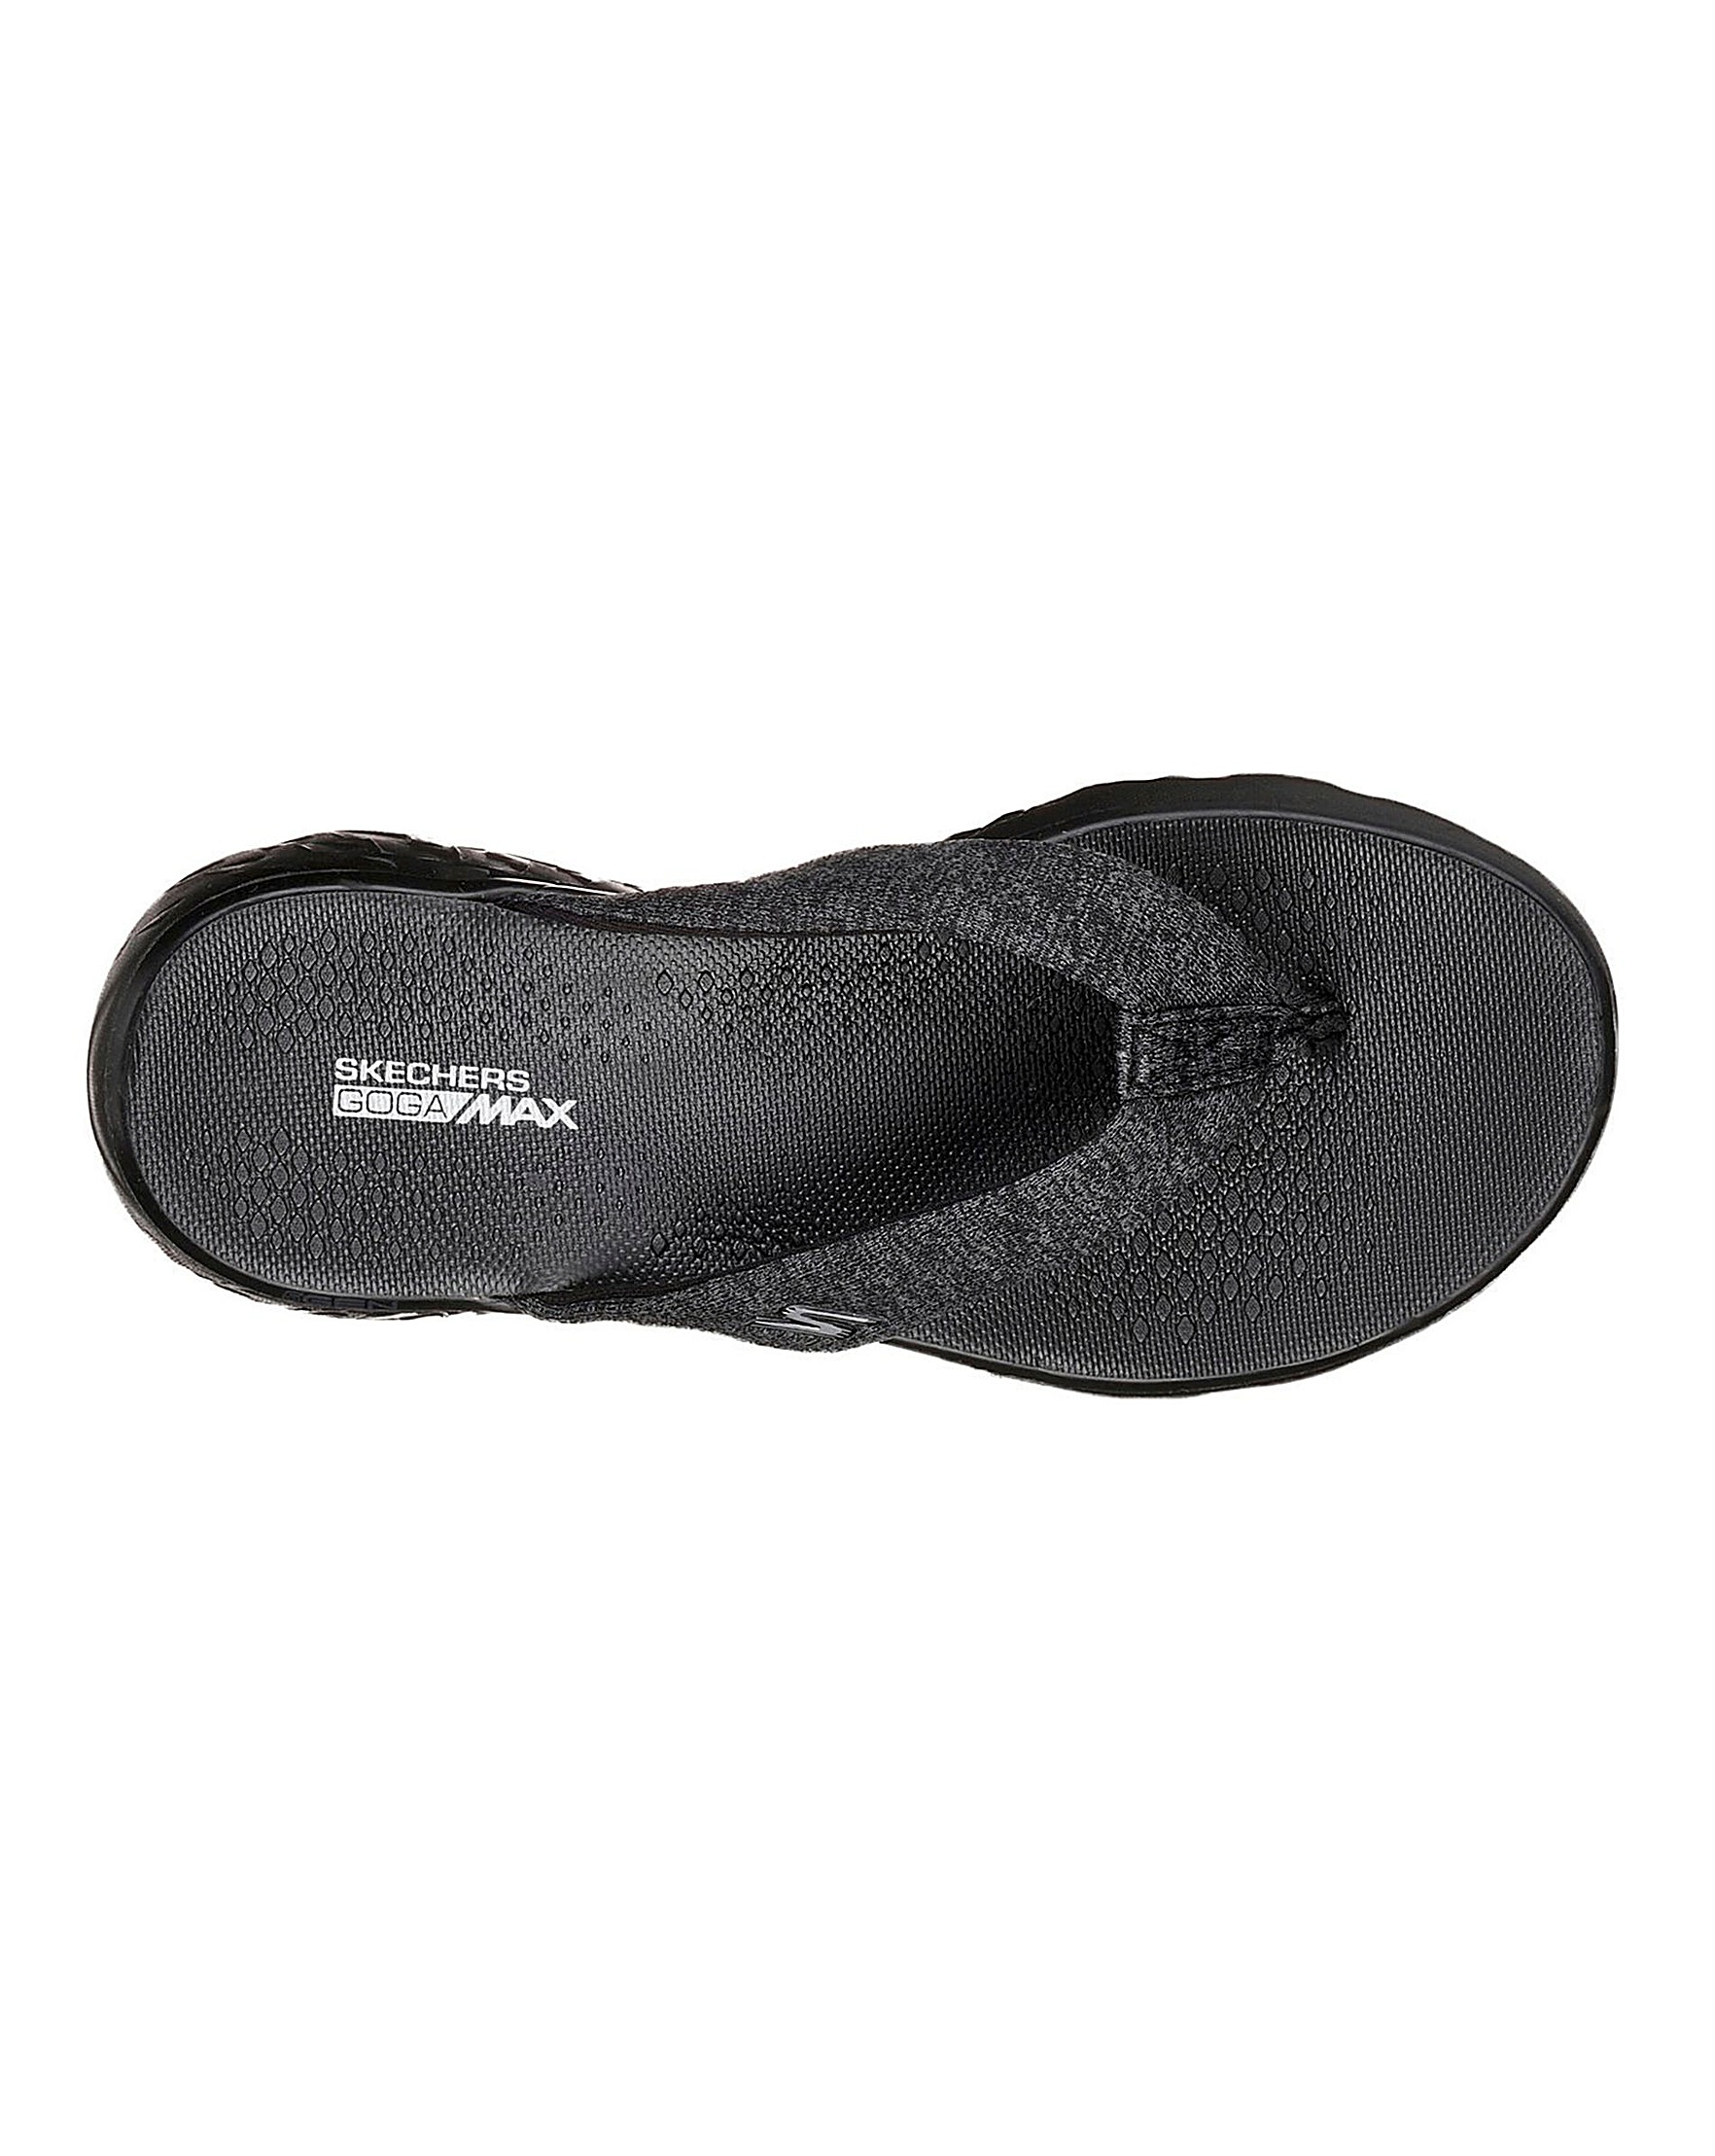 31d28ec58aa2 Skechers On-The-Go 400 Vivacity Sandals